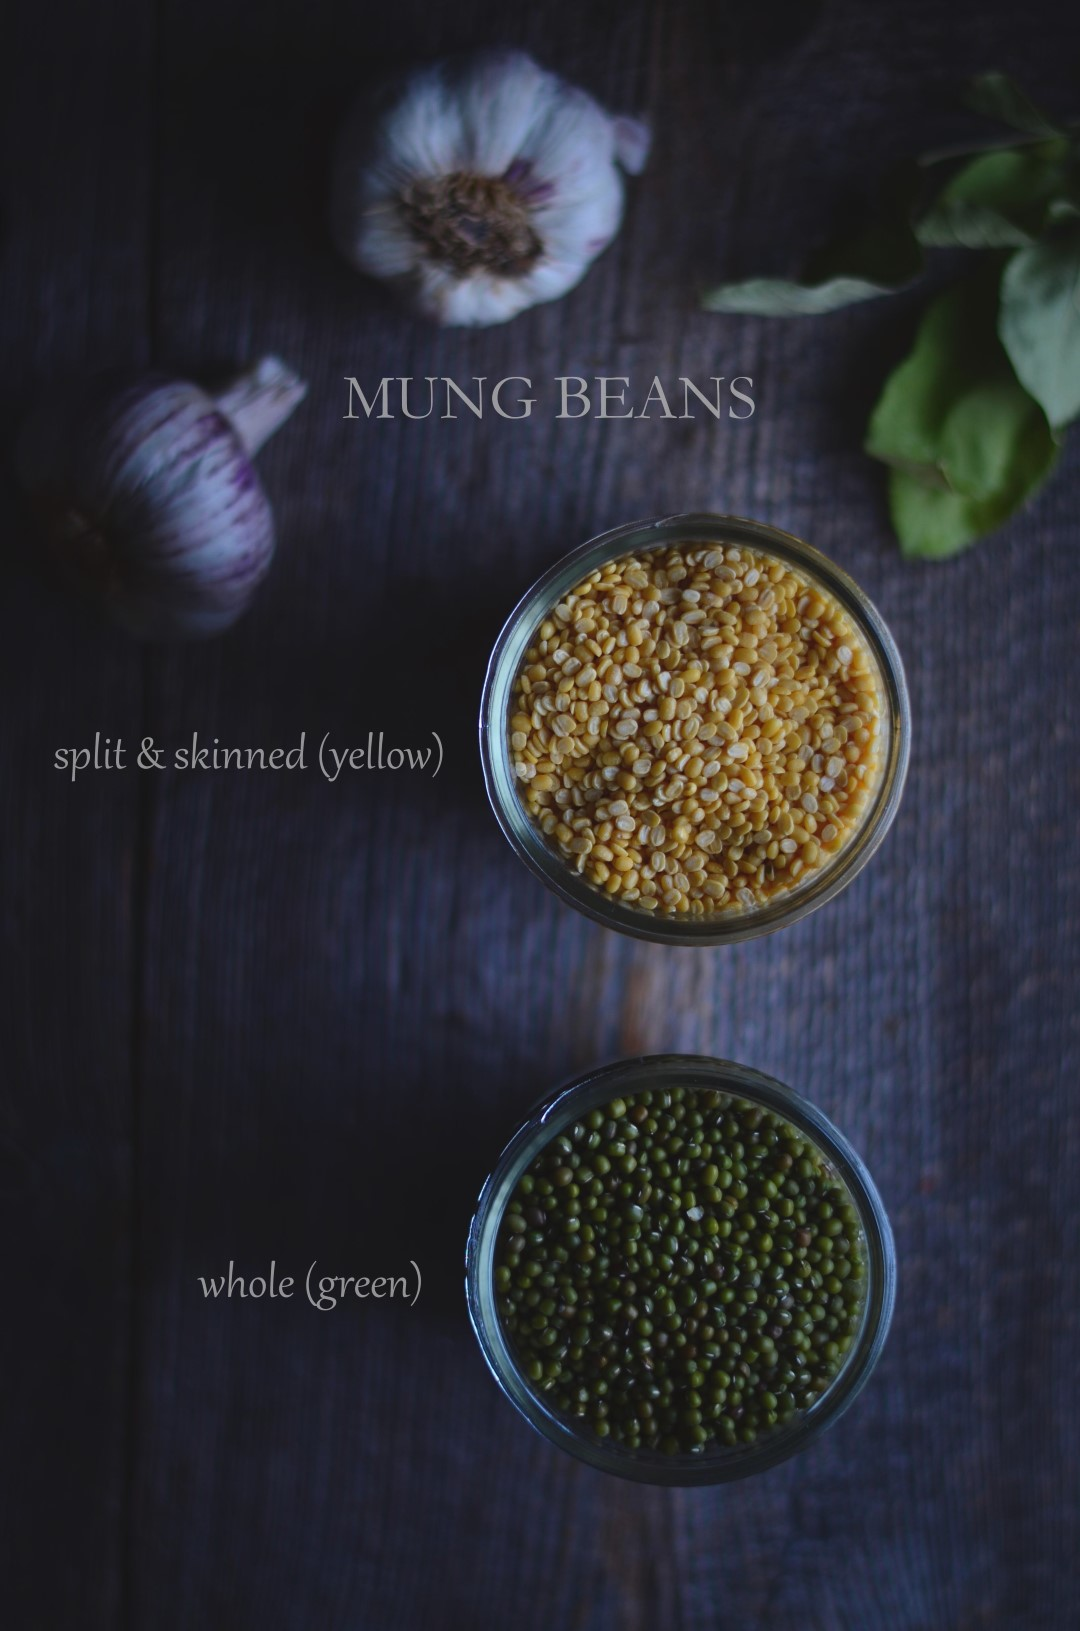 whole and split and skinned mung beans